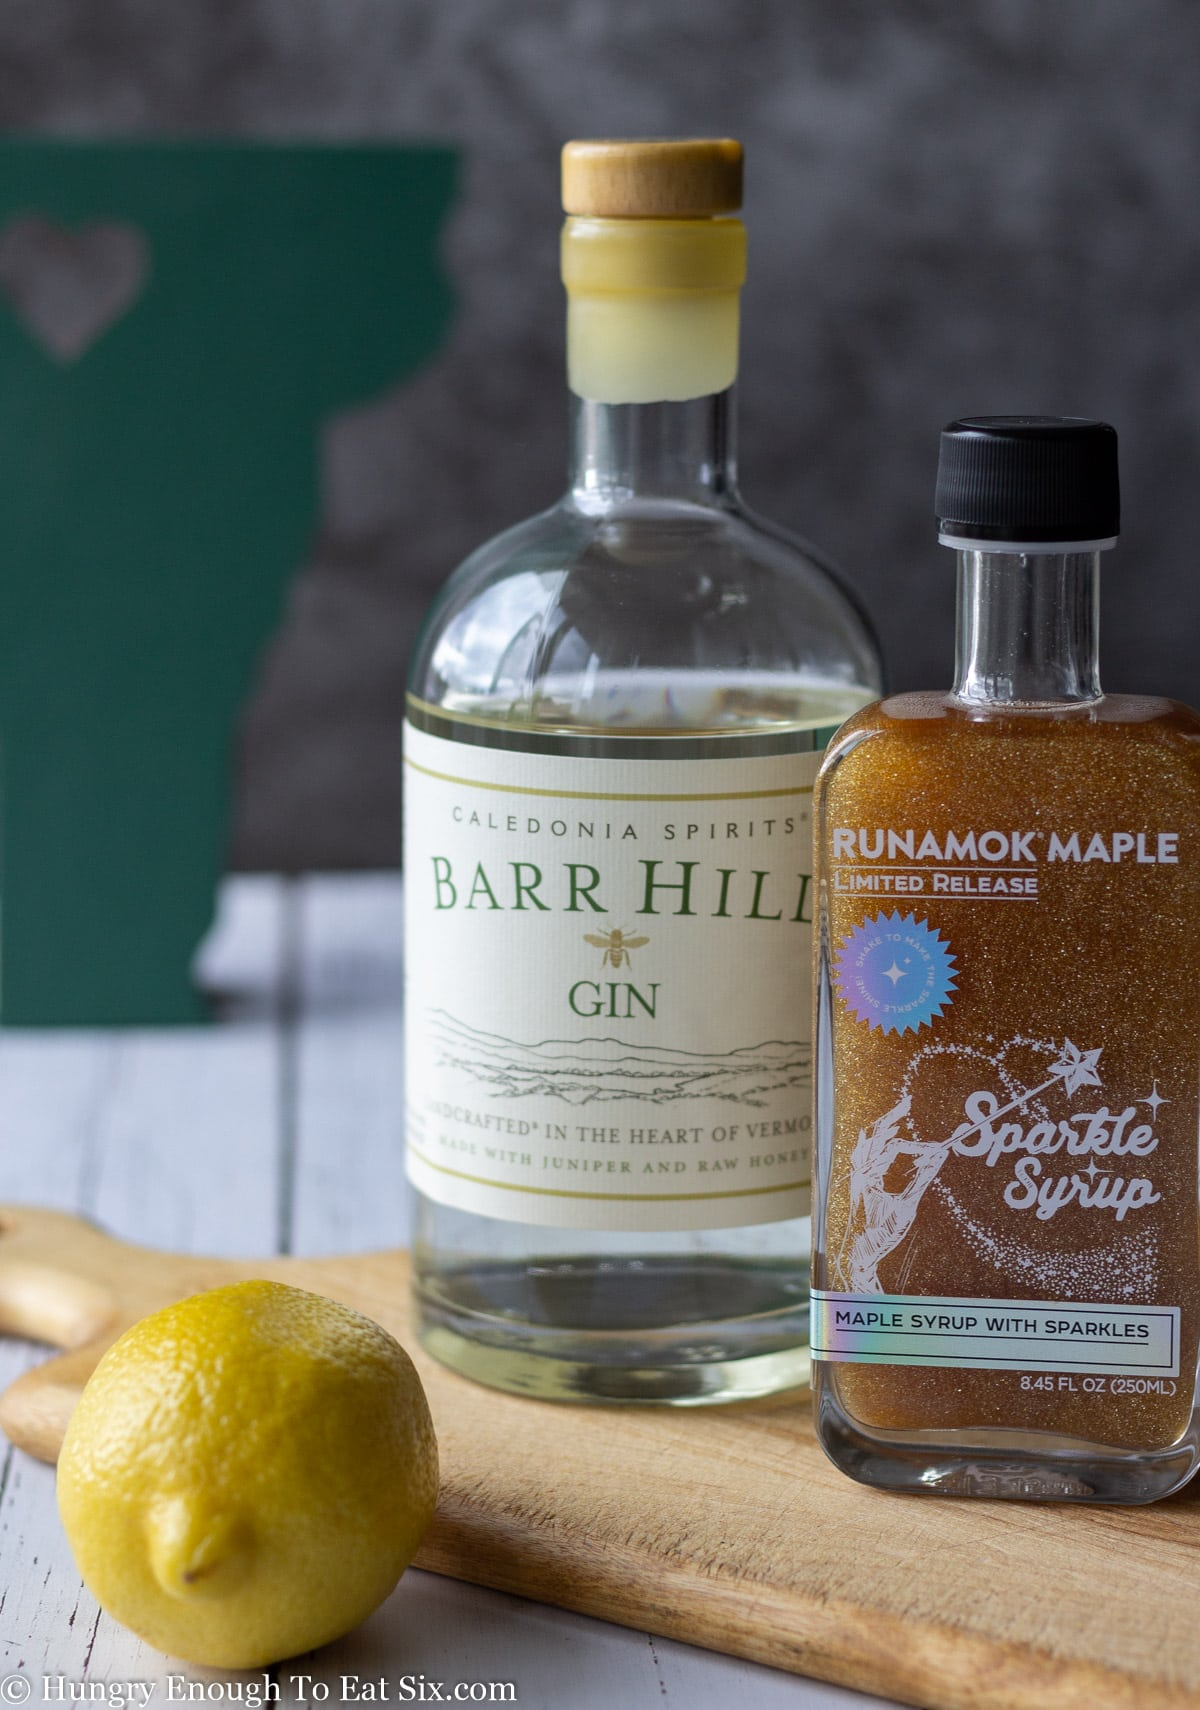 Bottles of gin and vermont maple syrup